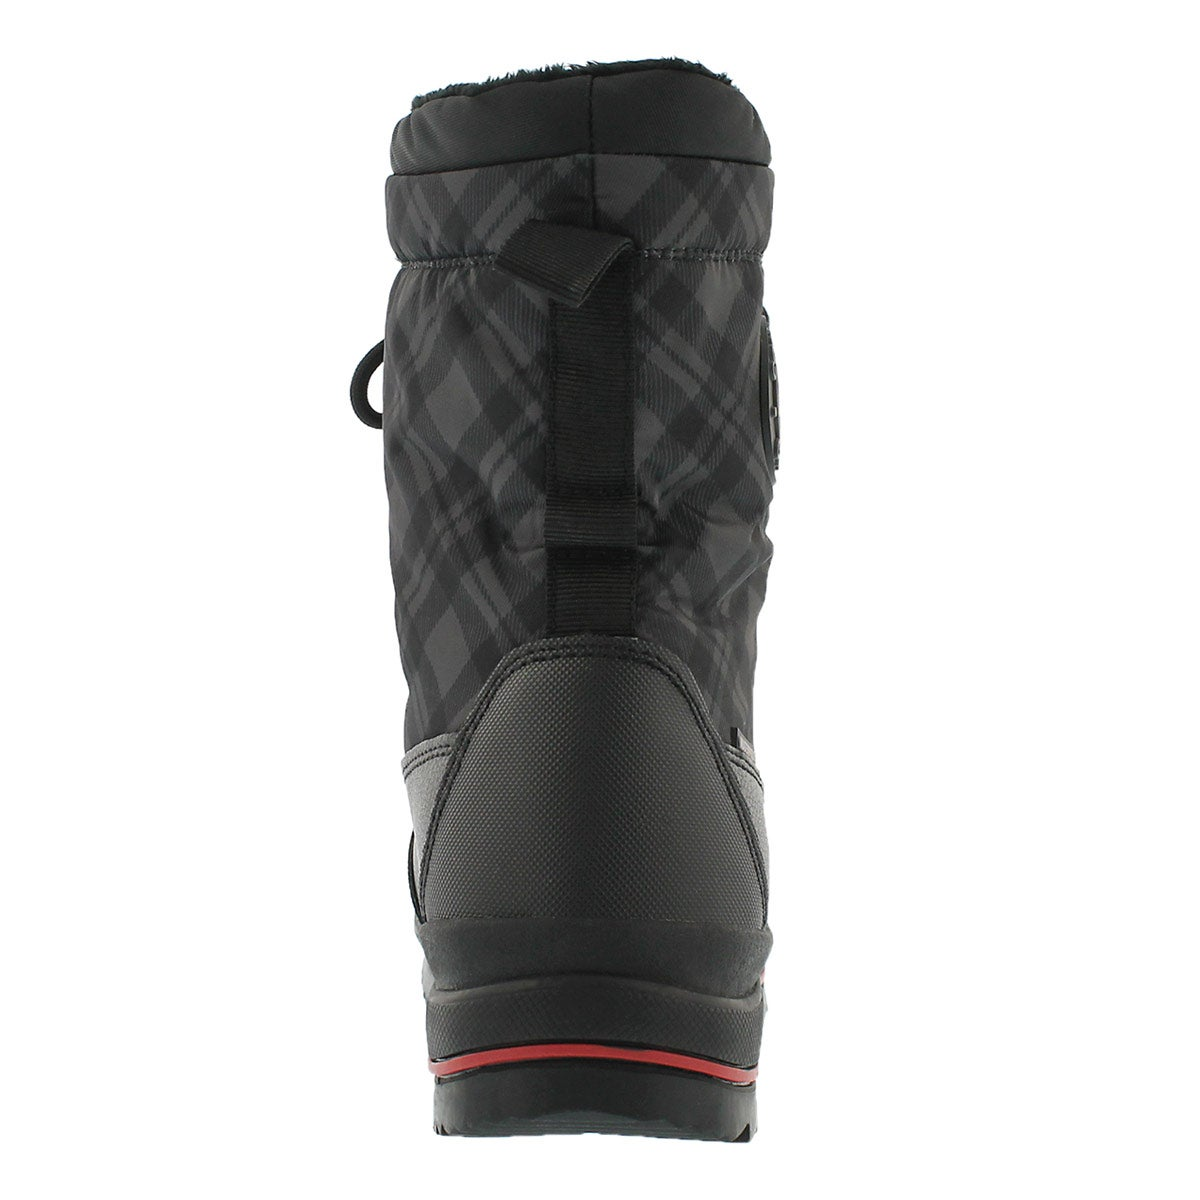 Lds Chambly blk plaid wtpf winter boot